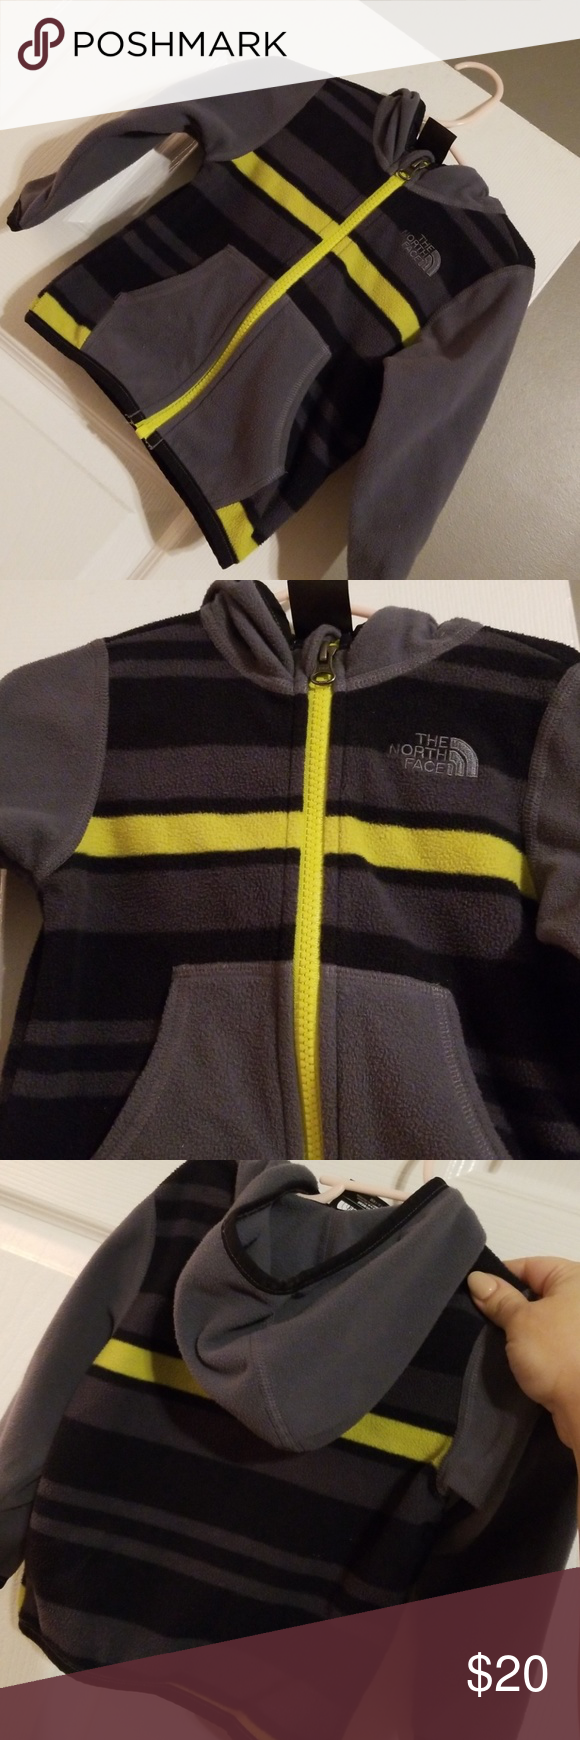 25adaed05 Toddler boys The North Face fleece jacket Yellow